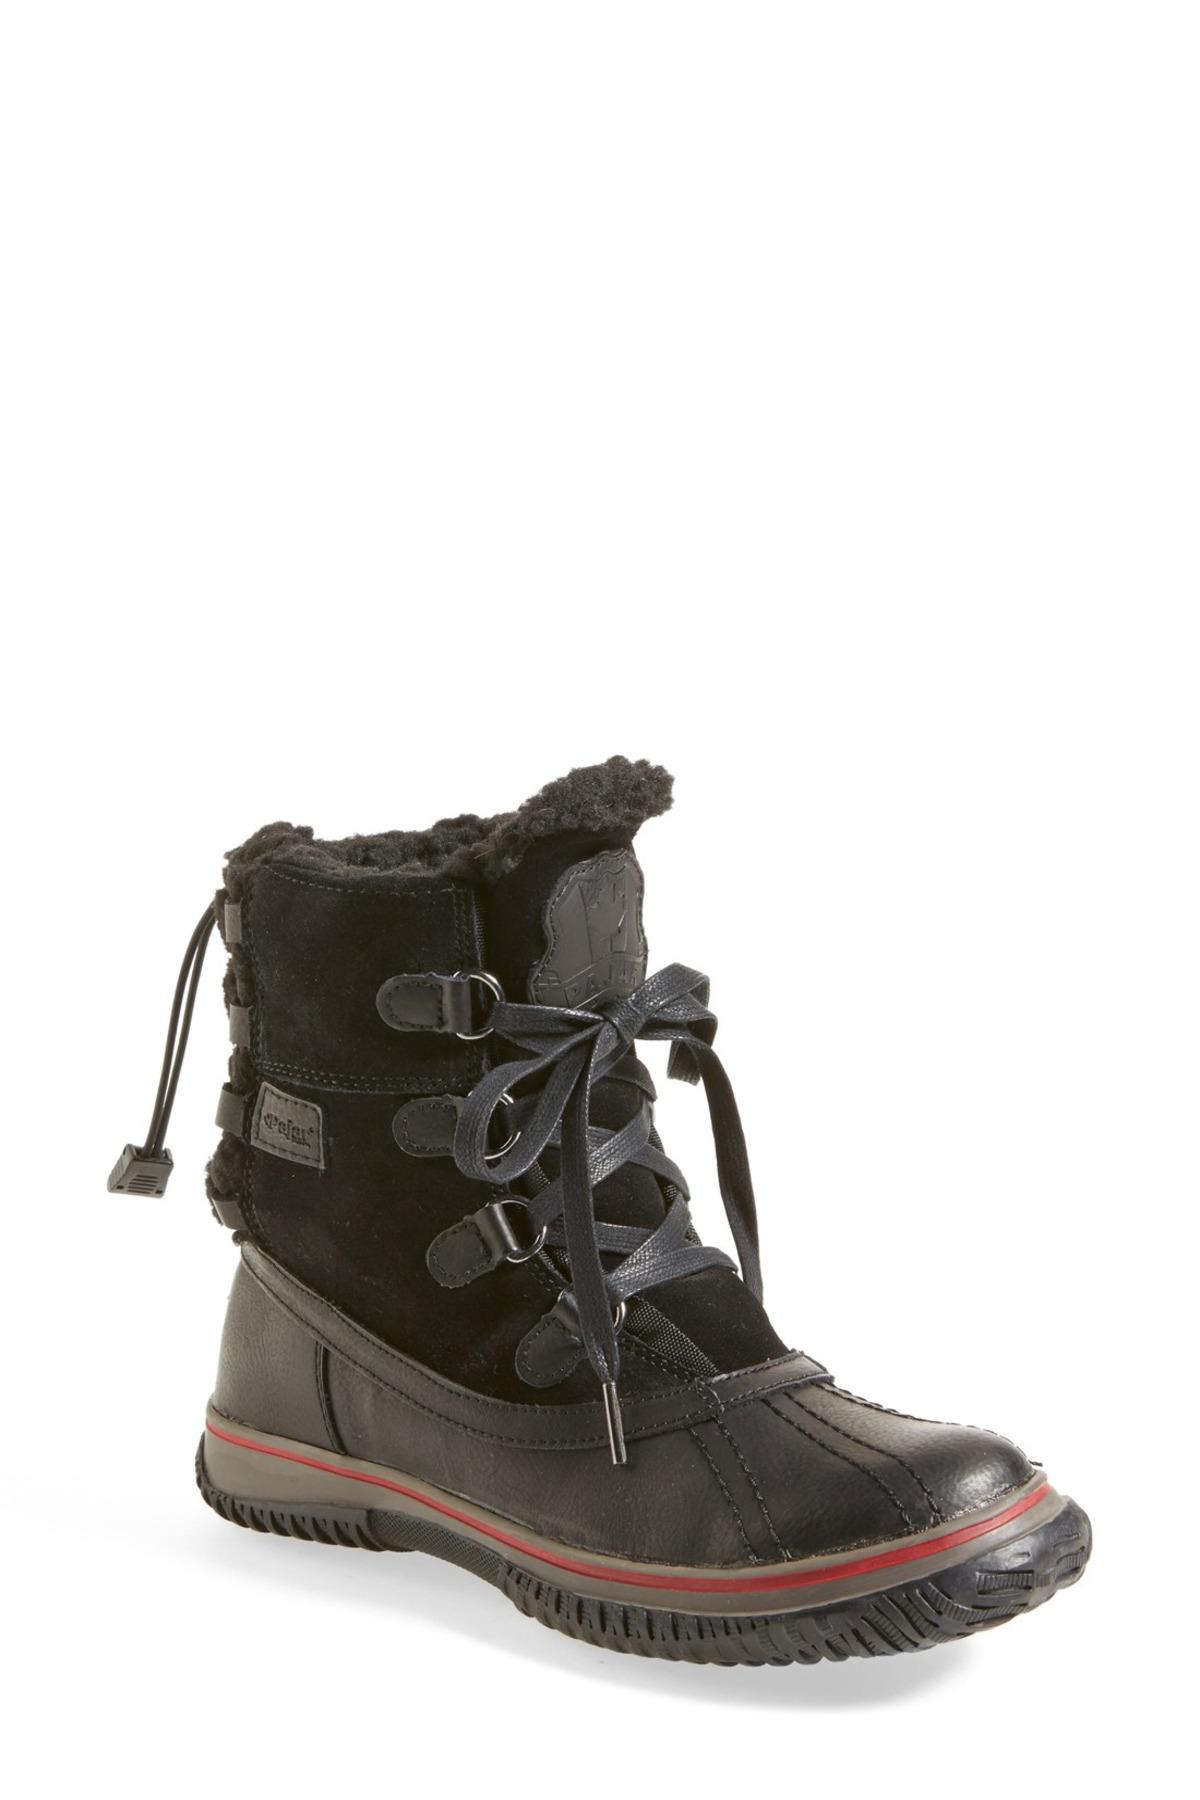 766170a8d Lyst - Pajar Iceland Snow Boots in Black